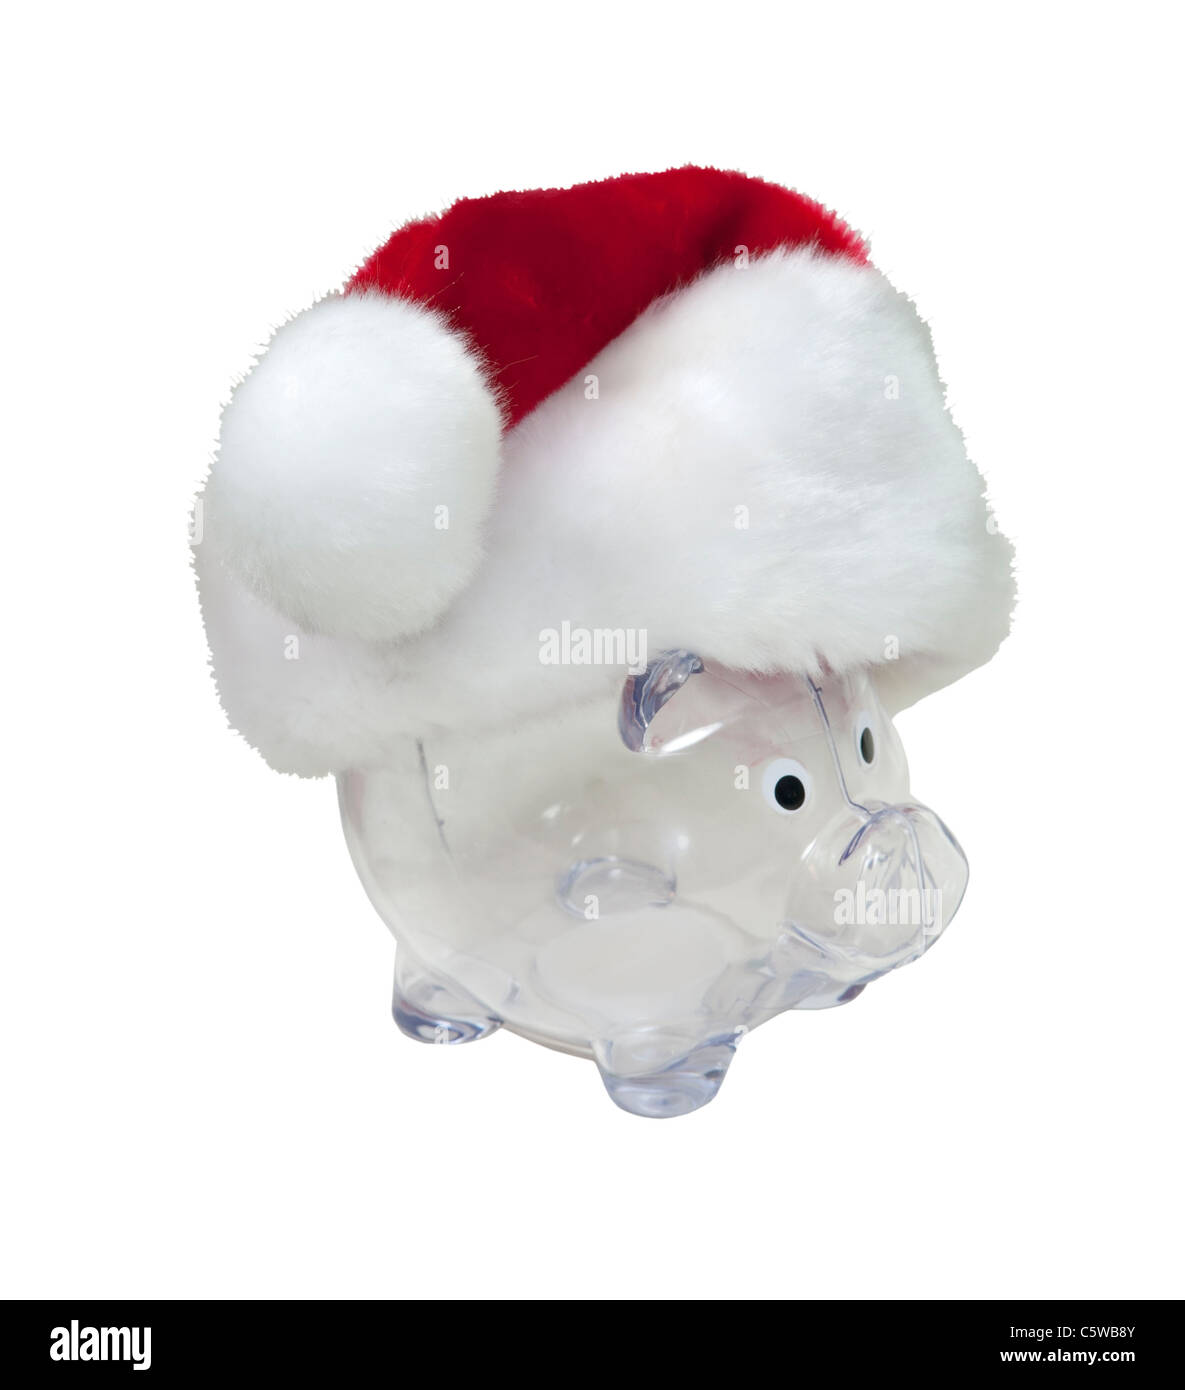 Santa funds shown by a traditional red with white trim Santa hat on a piggy bank for the holidays - path included - Stock Image